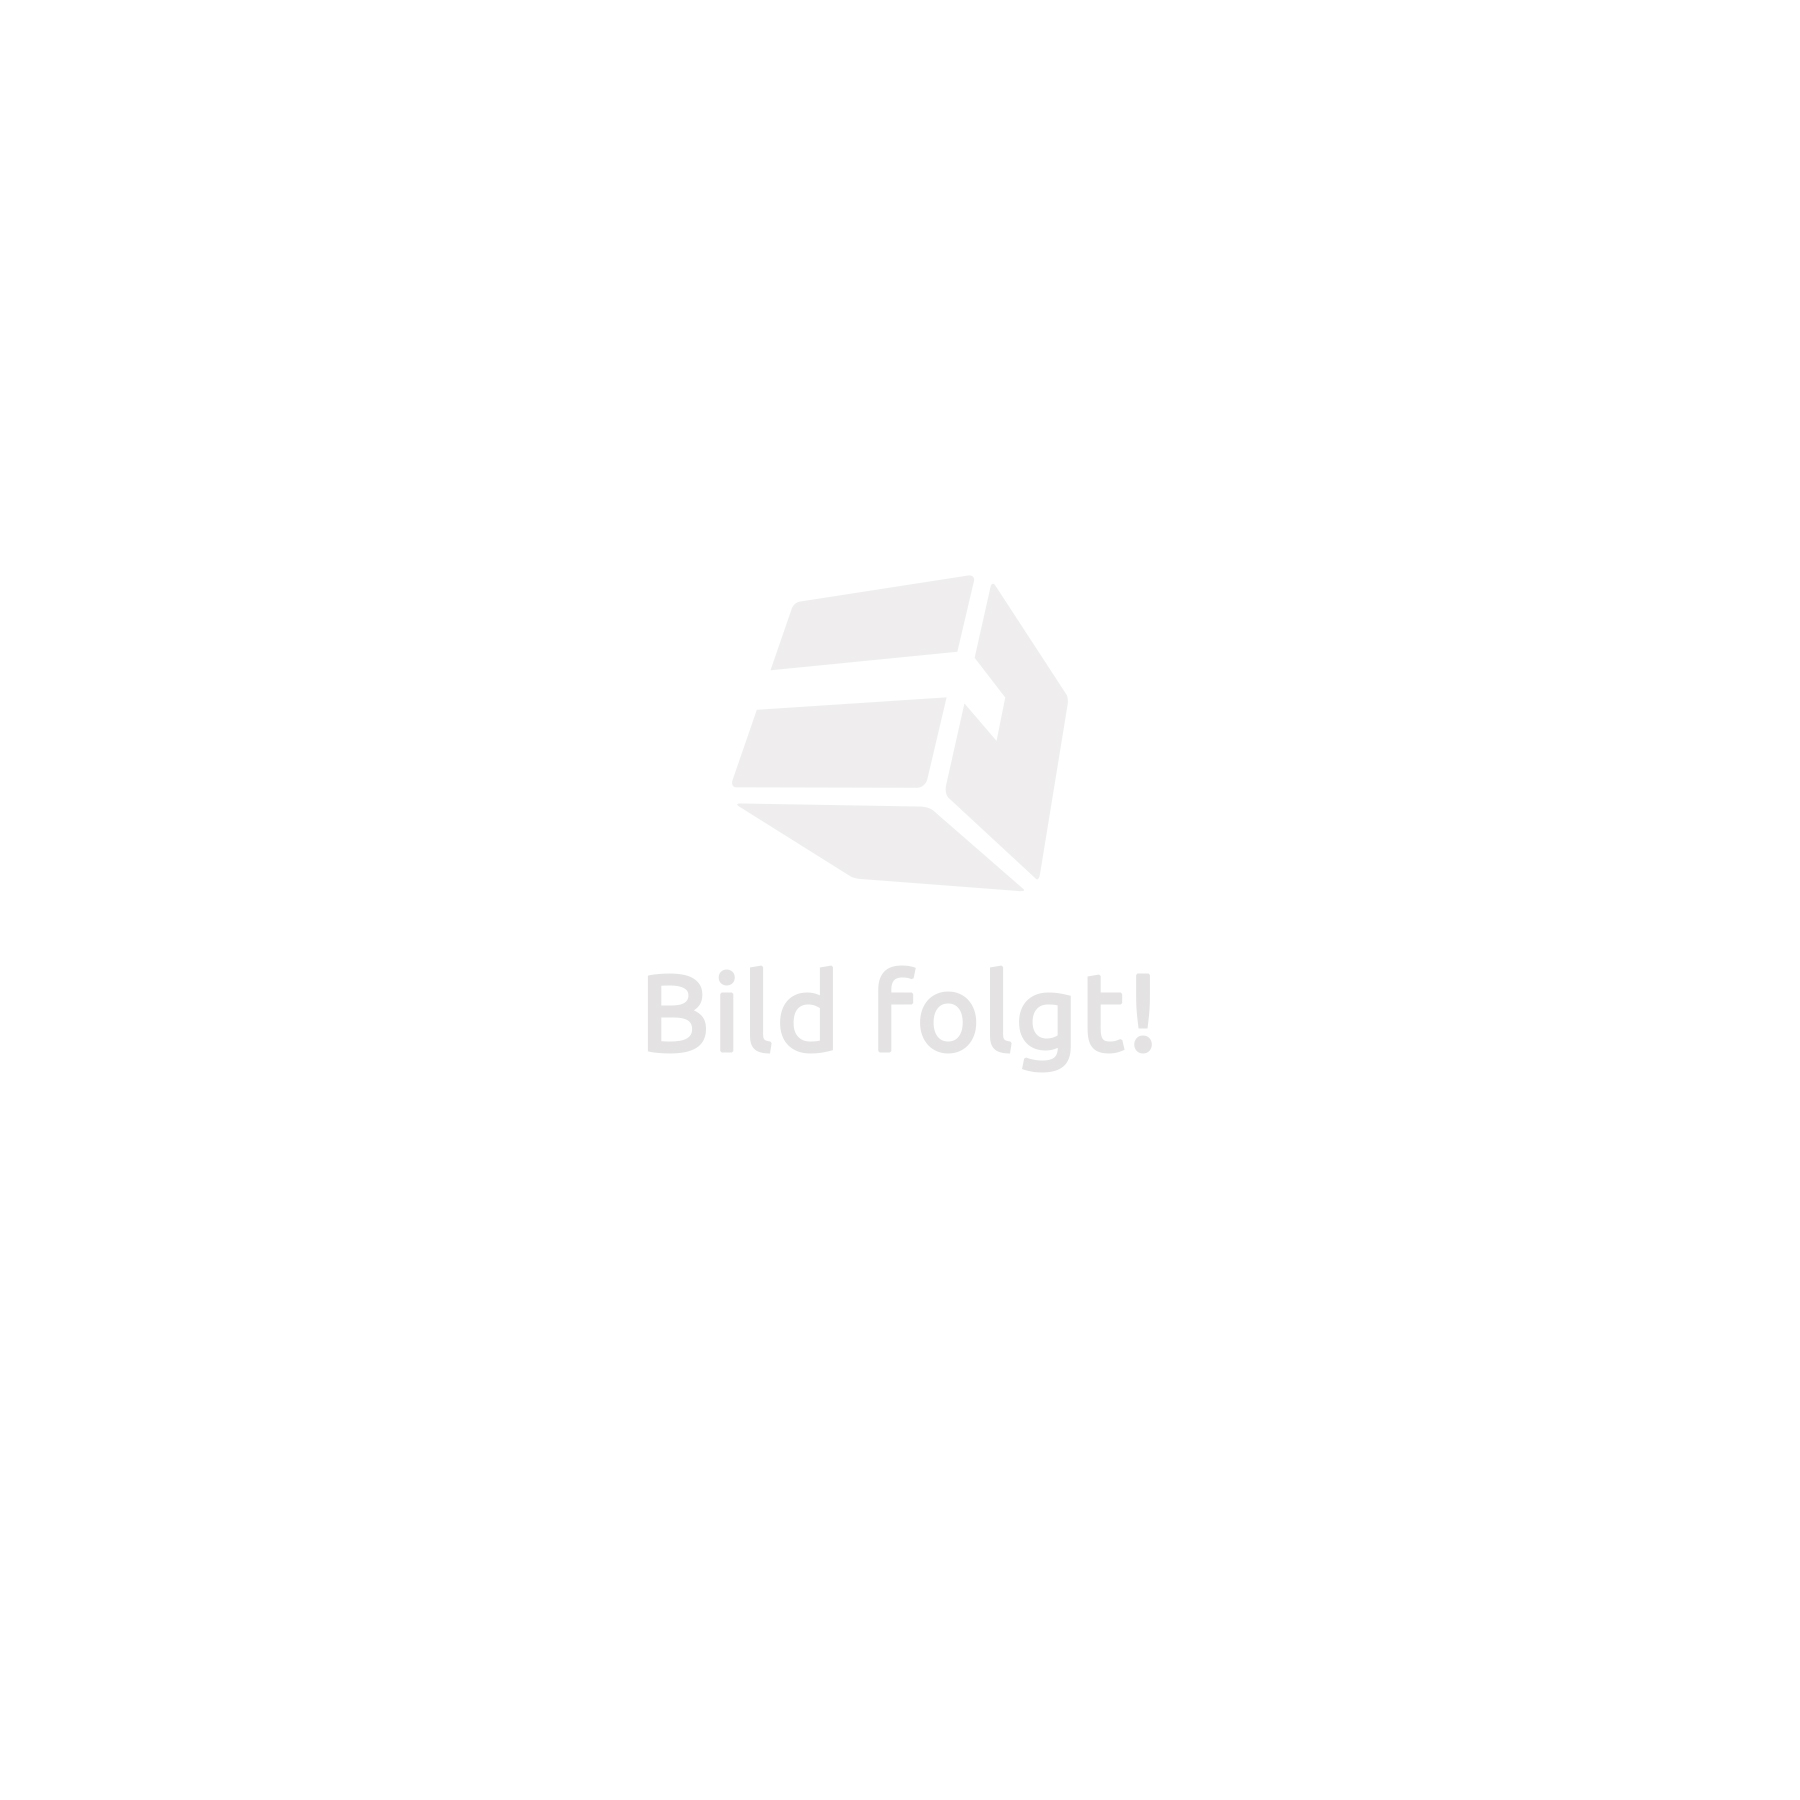 Ensemble Salon de jardin en résine tressée poly rotin table set 8+ ...